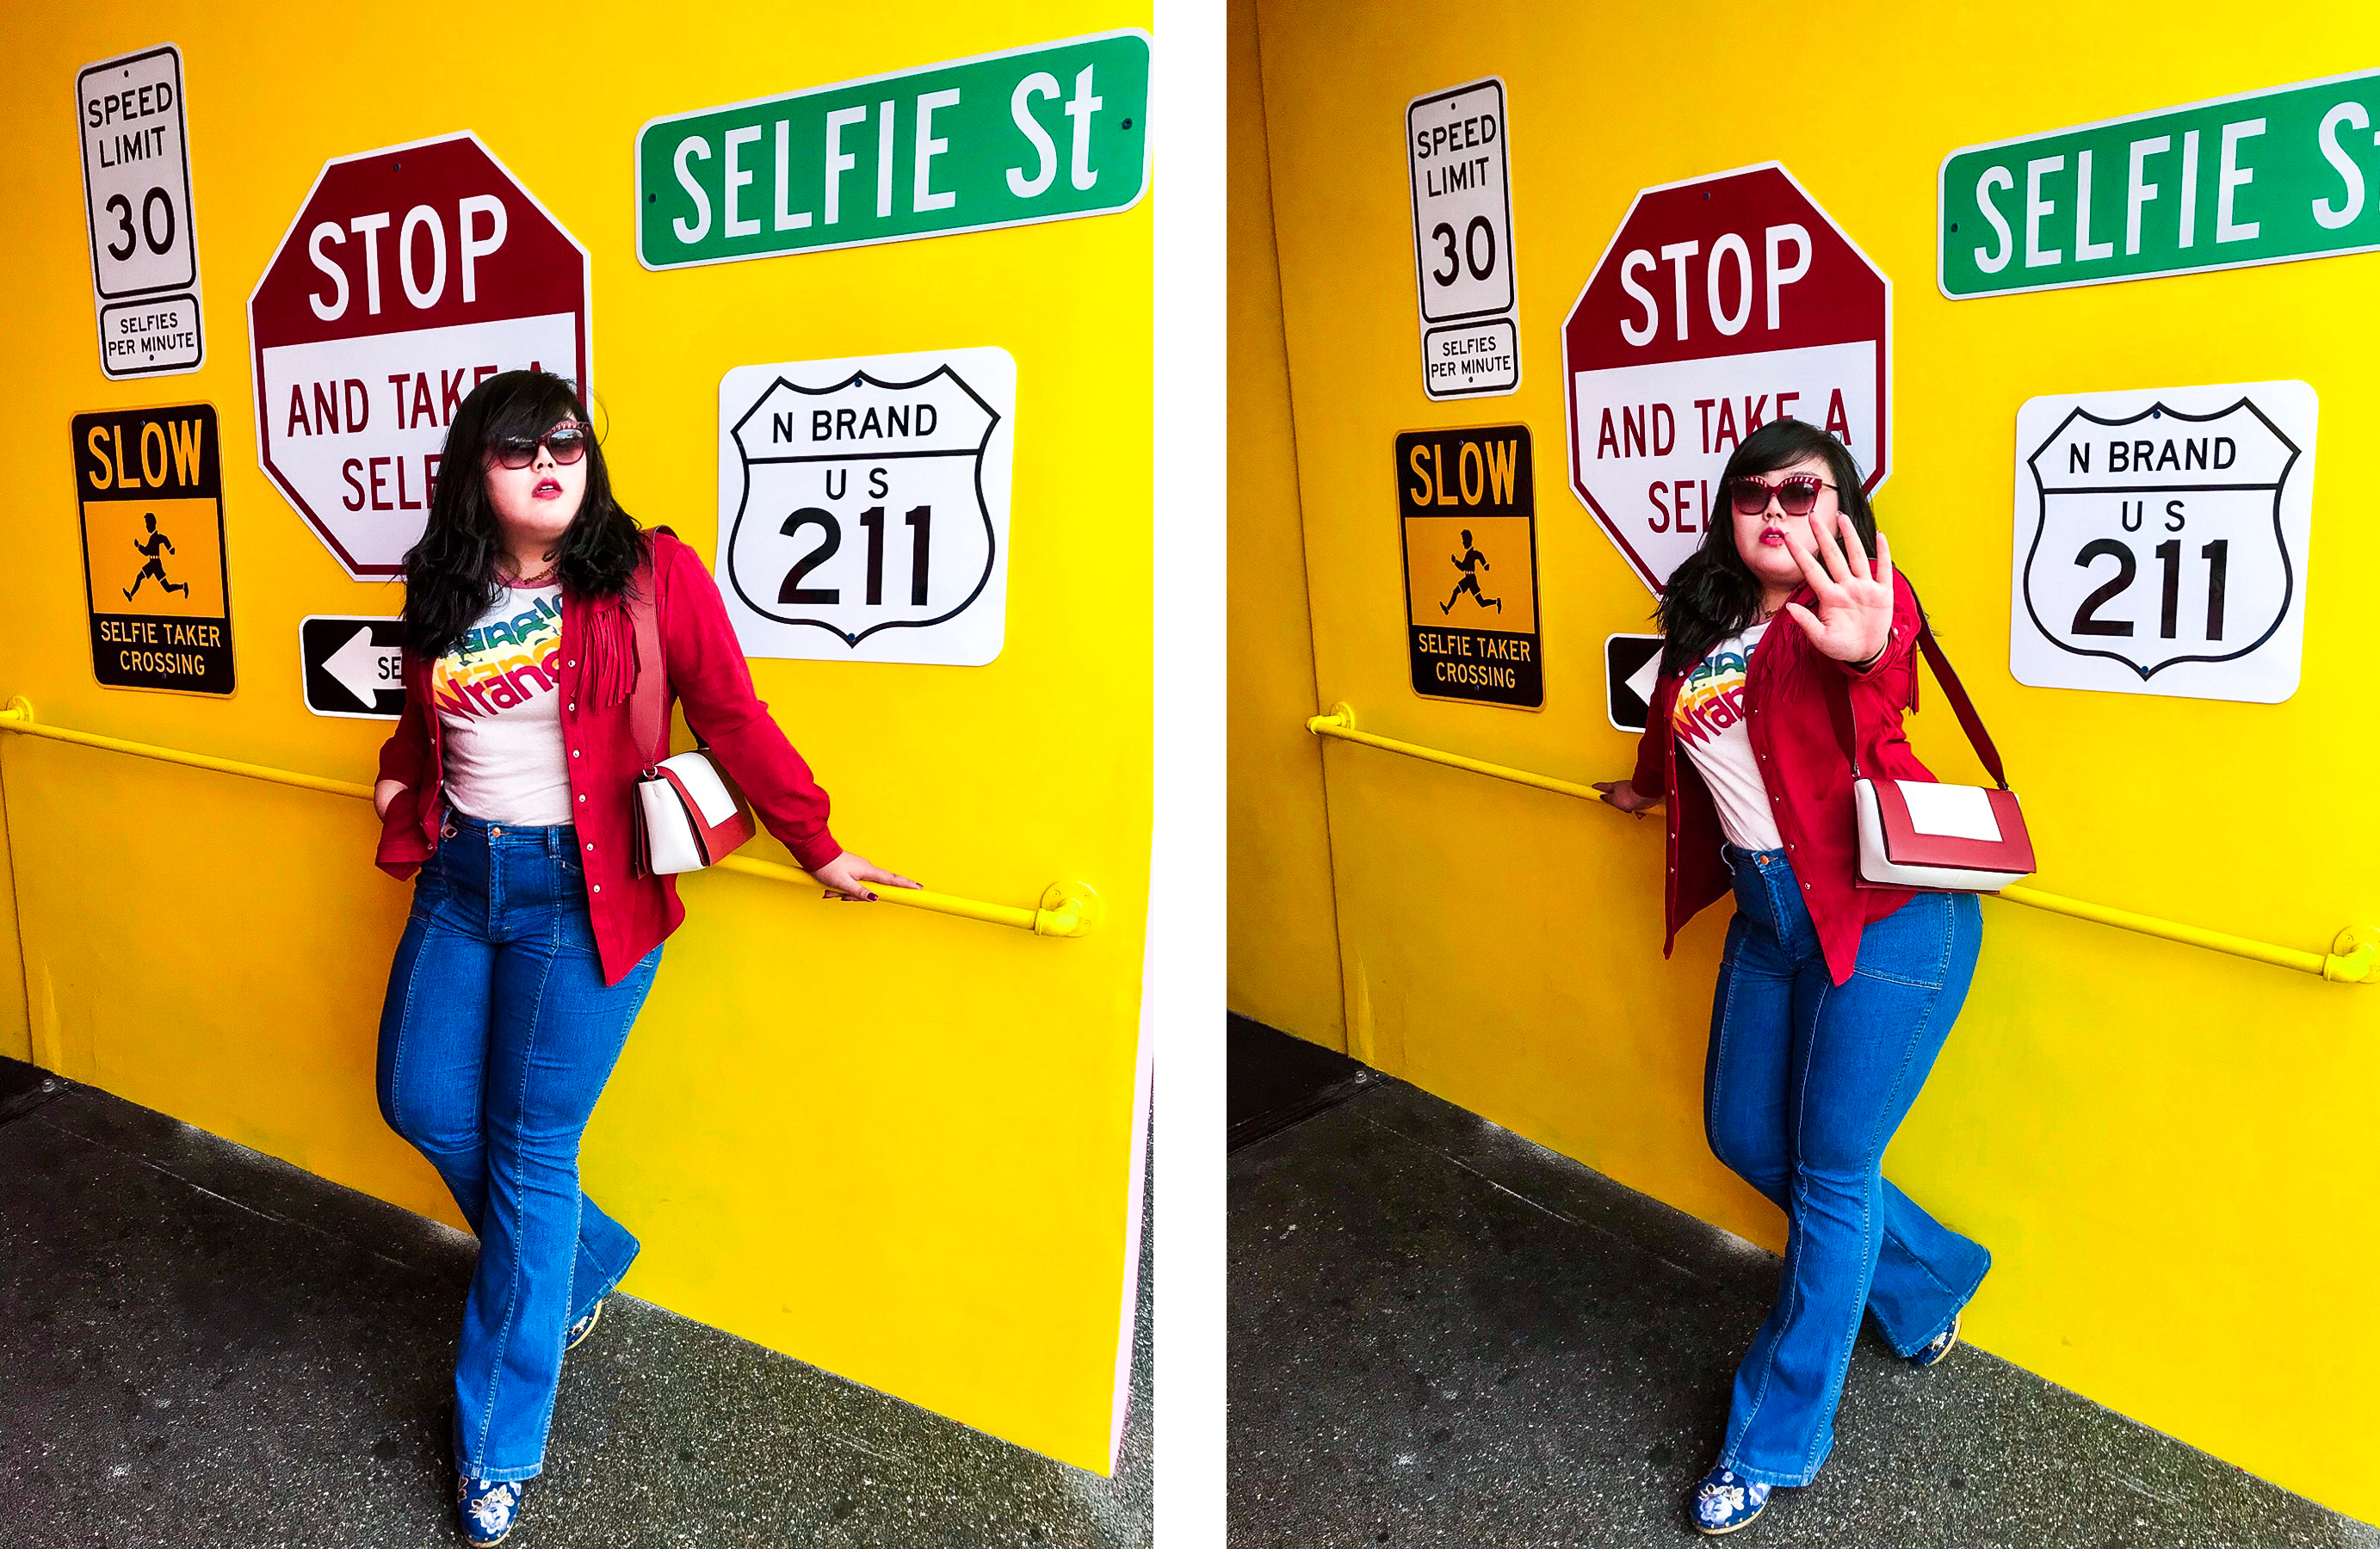 EVERYTHING FOR THE GRAM- THE SELFIE MUSEUM1